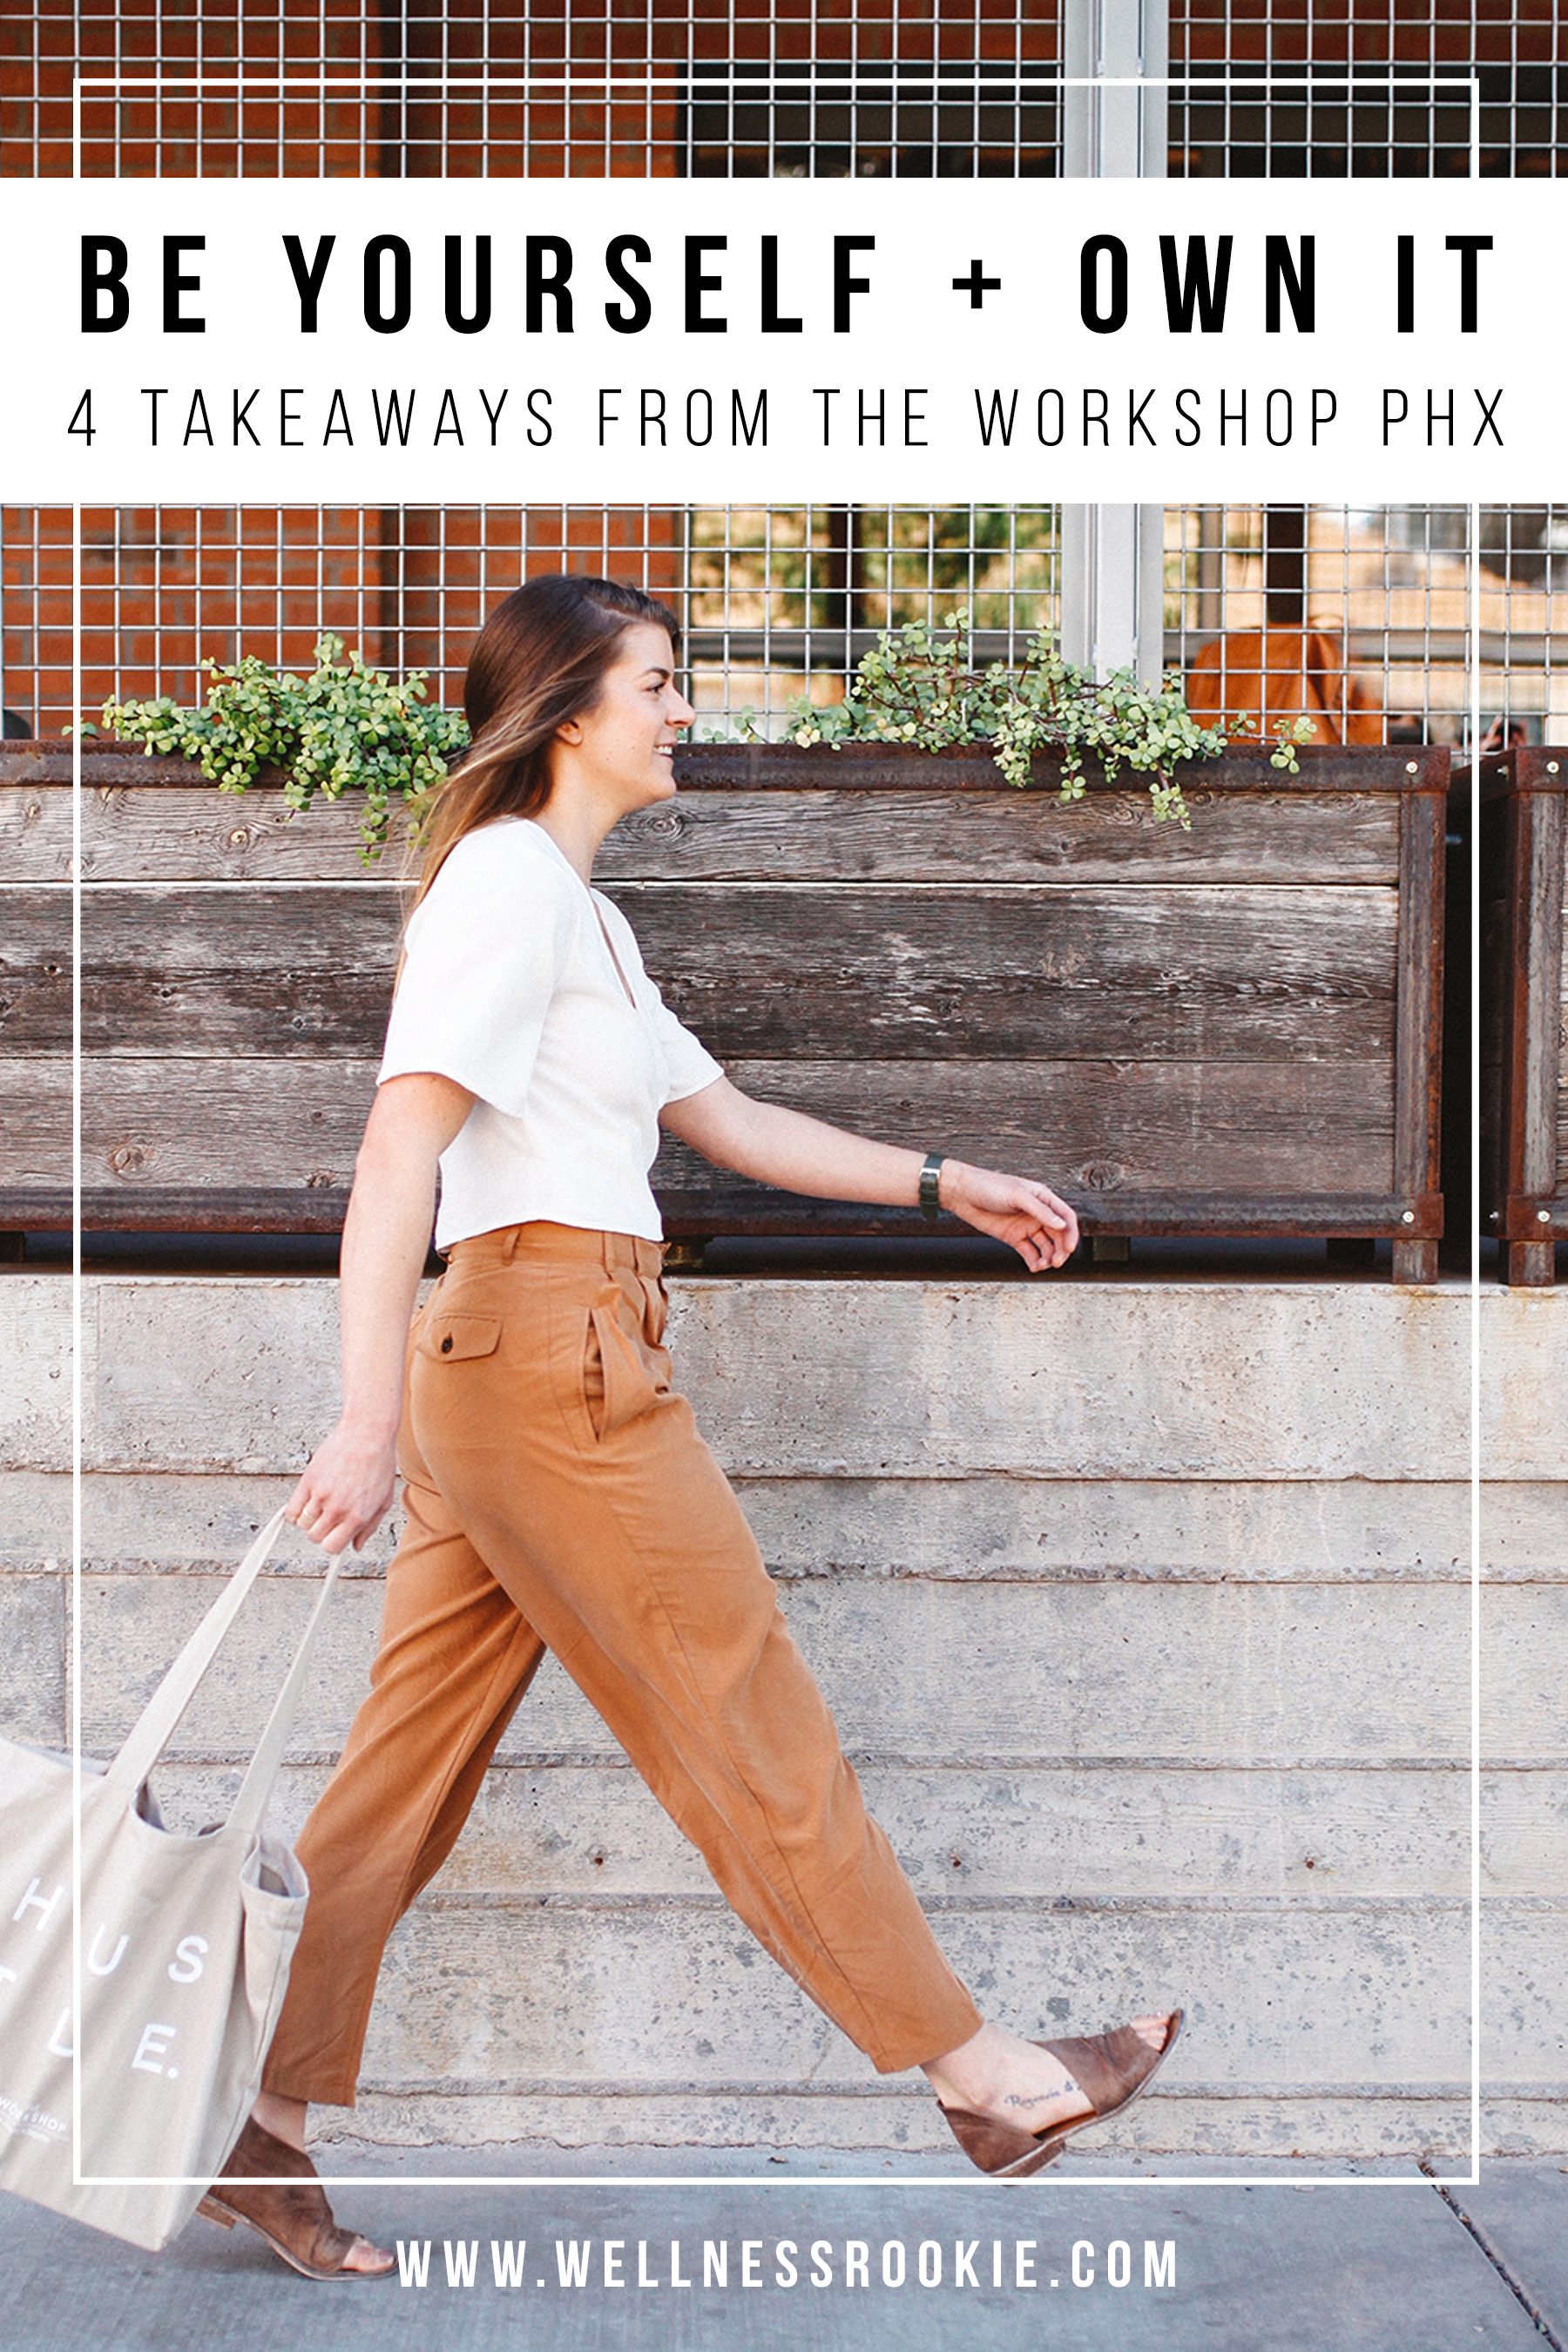 4 takeaways from the workshop-phoenix on better blogging practices, creating a social media community, and strengthening your online presence